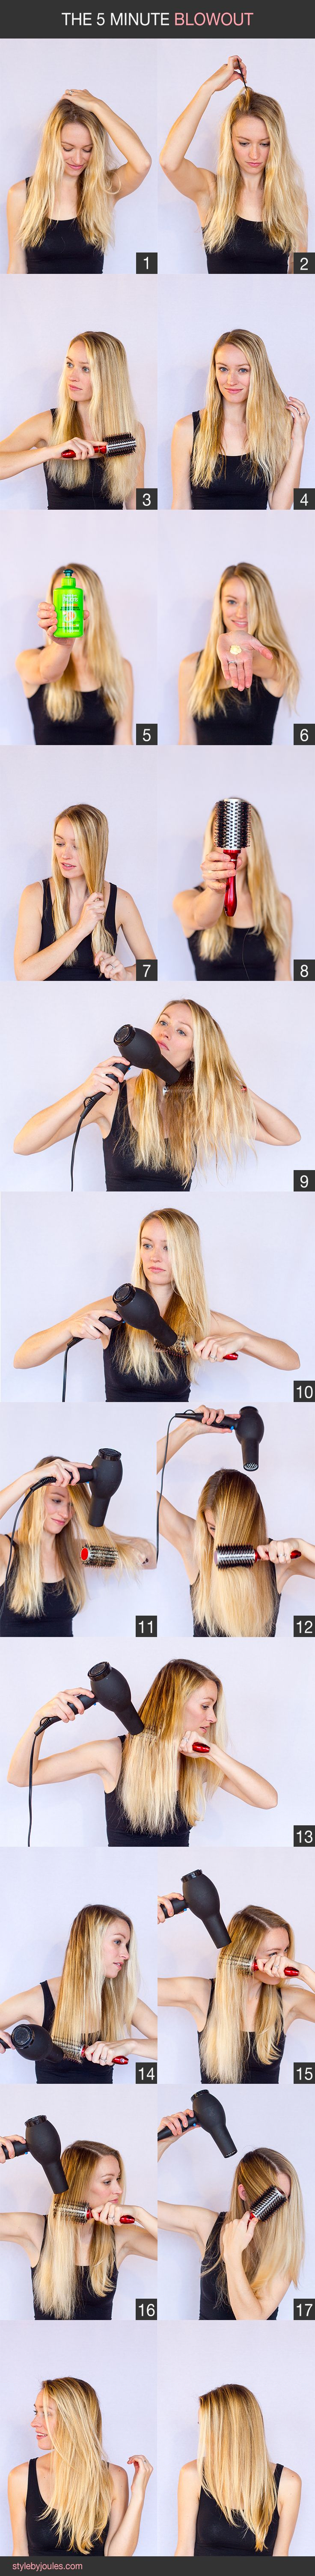 Easy diy blow dry tutorial for frizzy, wavy hair. This is how I do my hair before work every day.